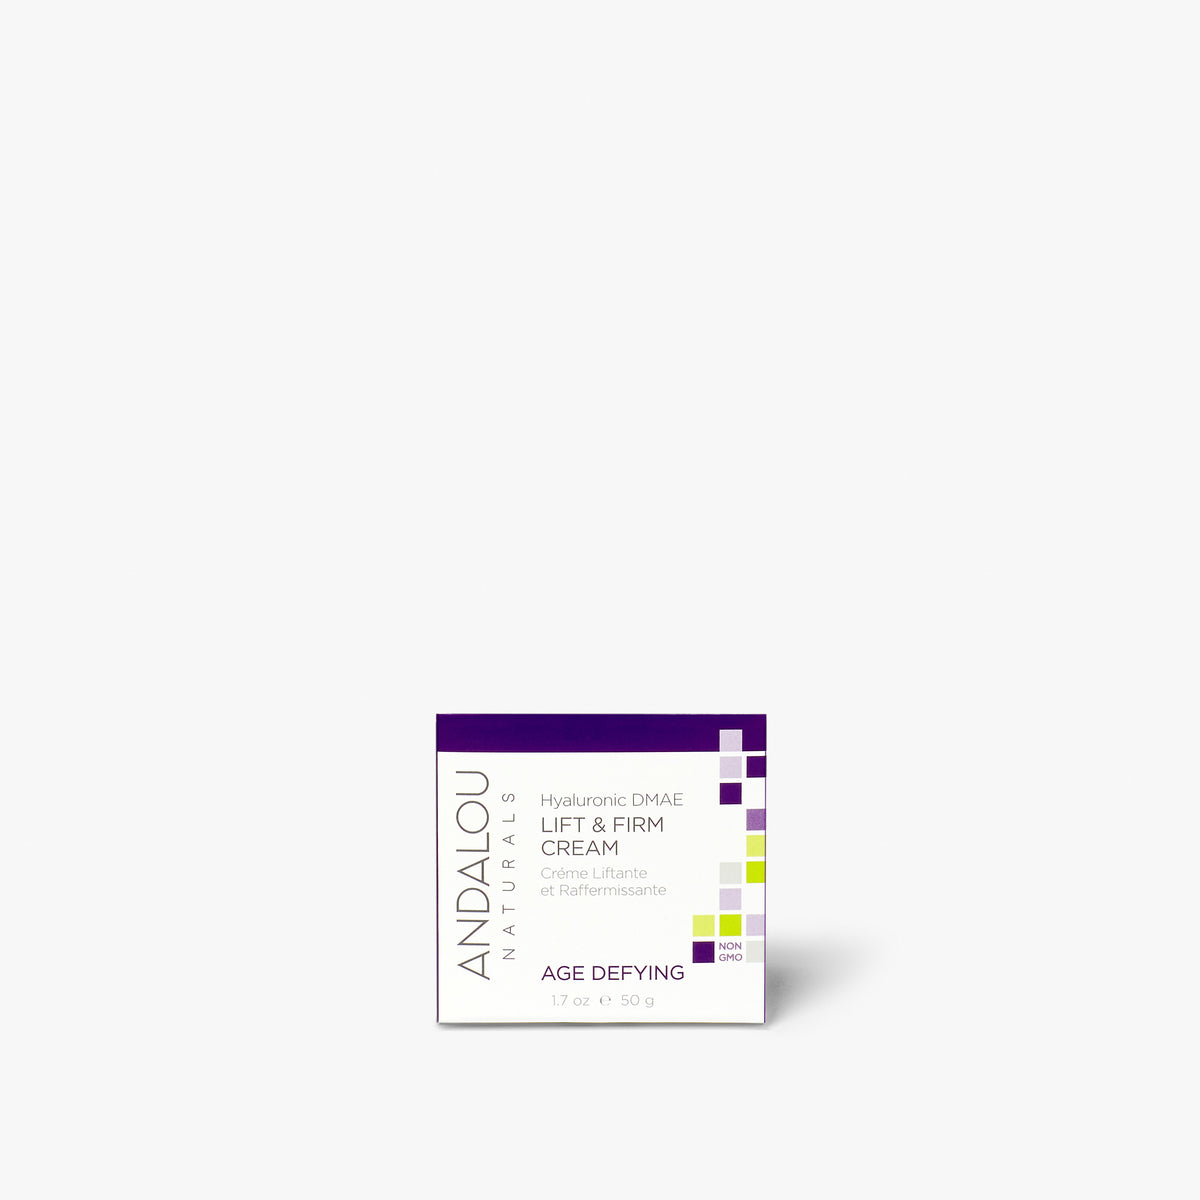 Andalou Naturals Age Defying Hyaluronic DMAE Lift & Firm Cream box